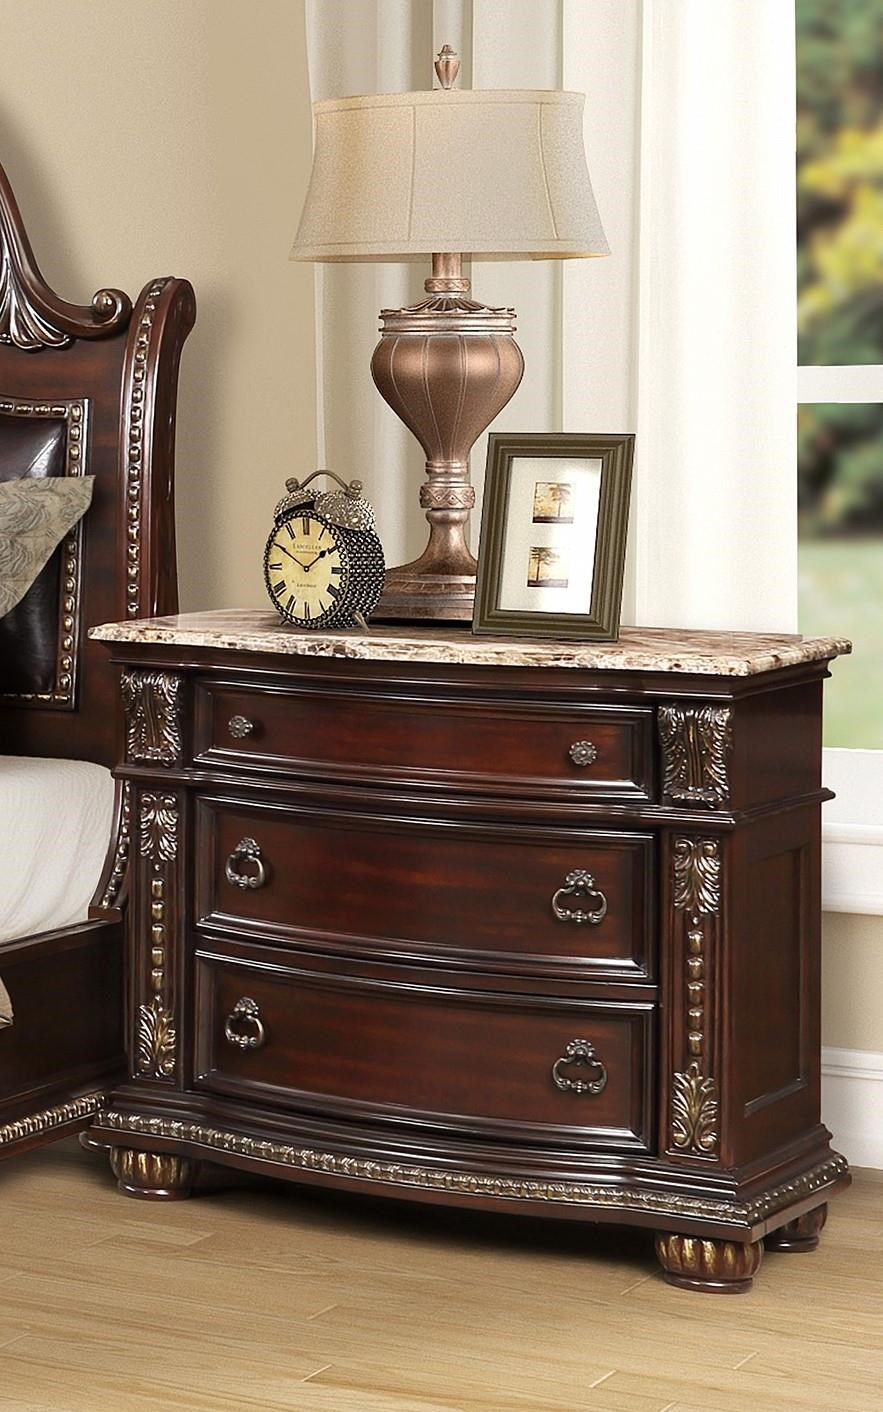 3600 BEAU Marble Top Three Drawer Nightstand by Oasis Home & Decor at Furniture Fair - North Carolina